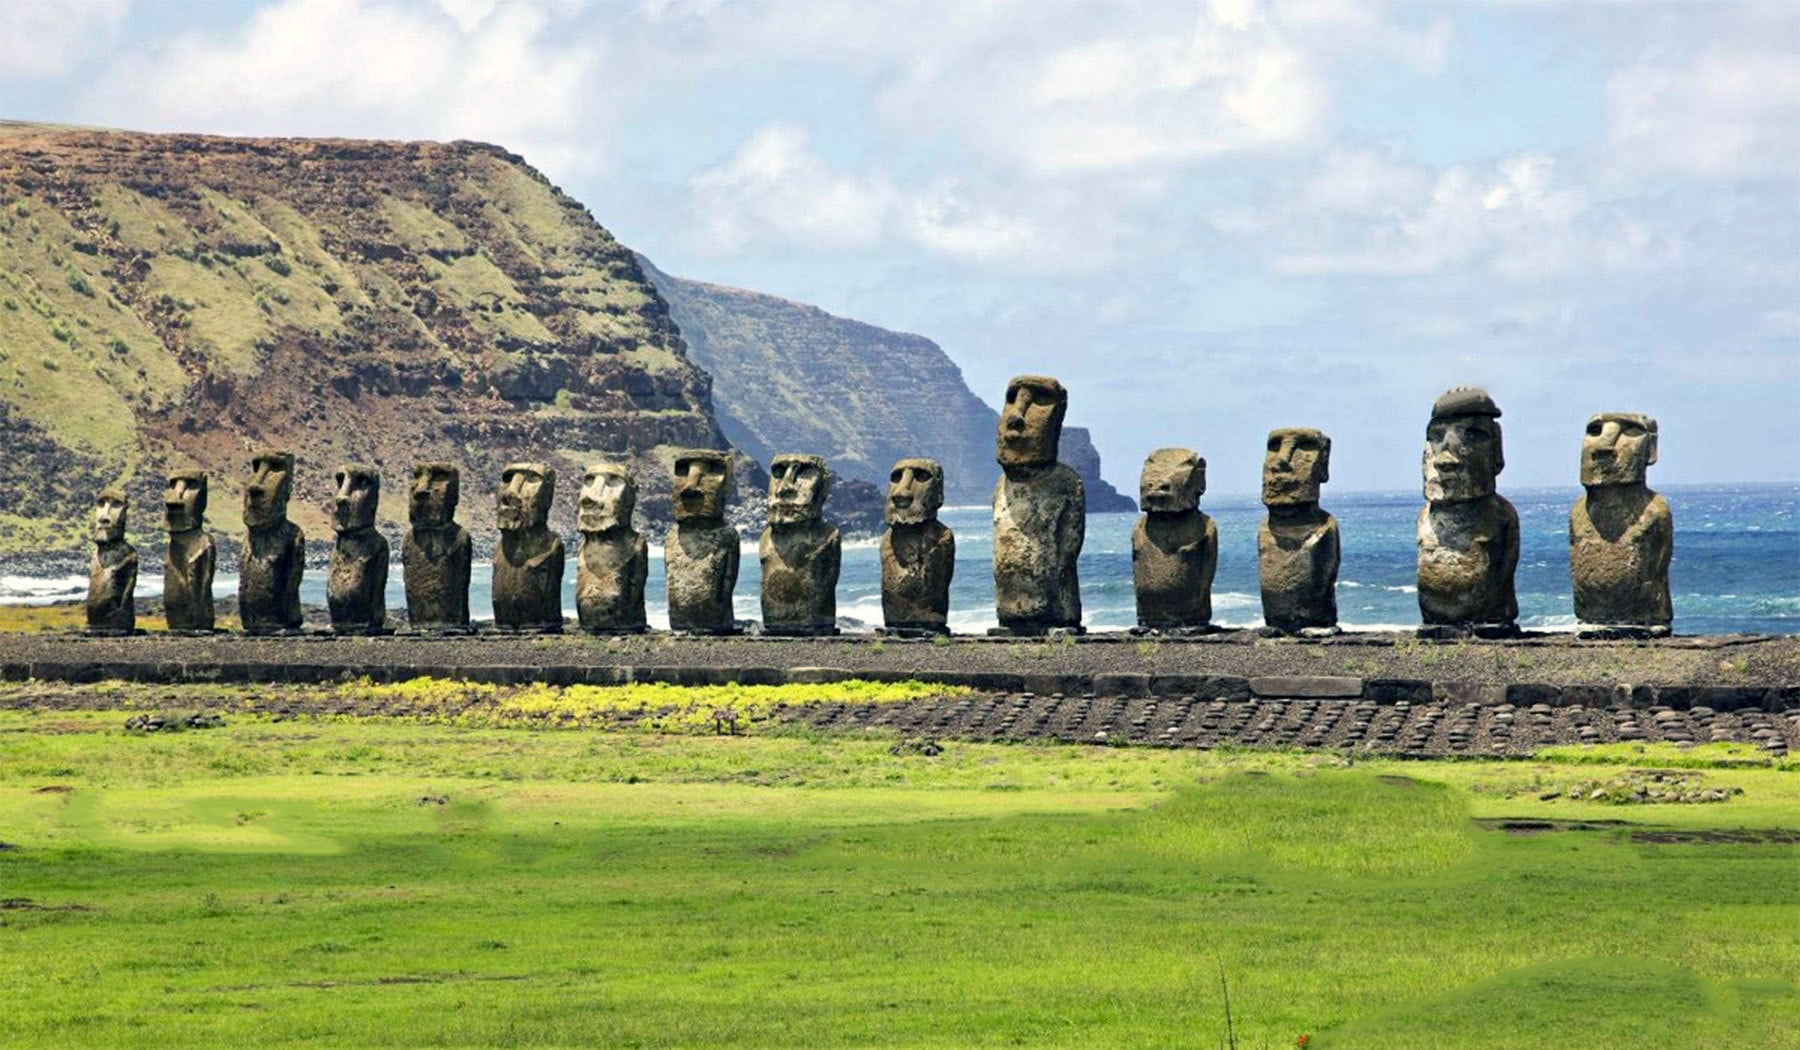 The Stone Heads of Easter Island